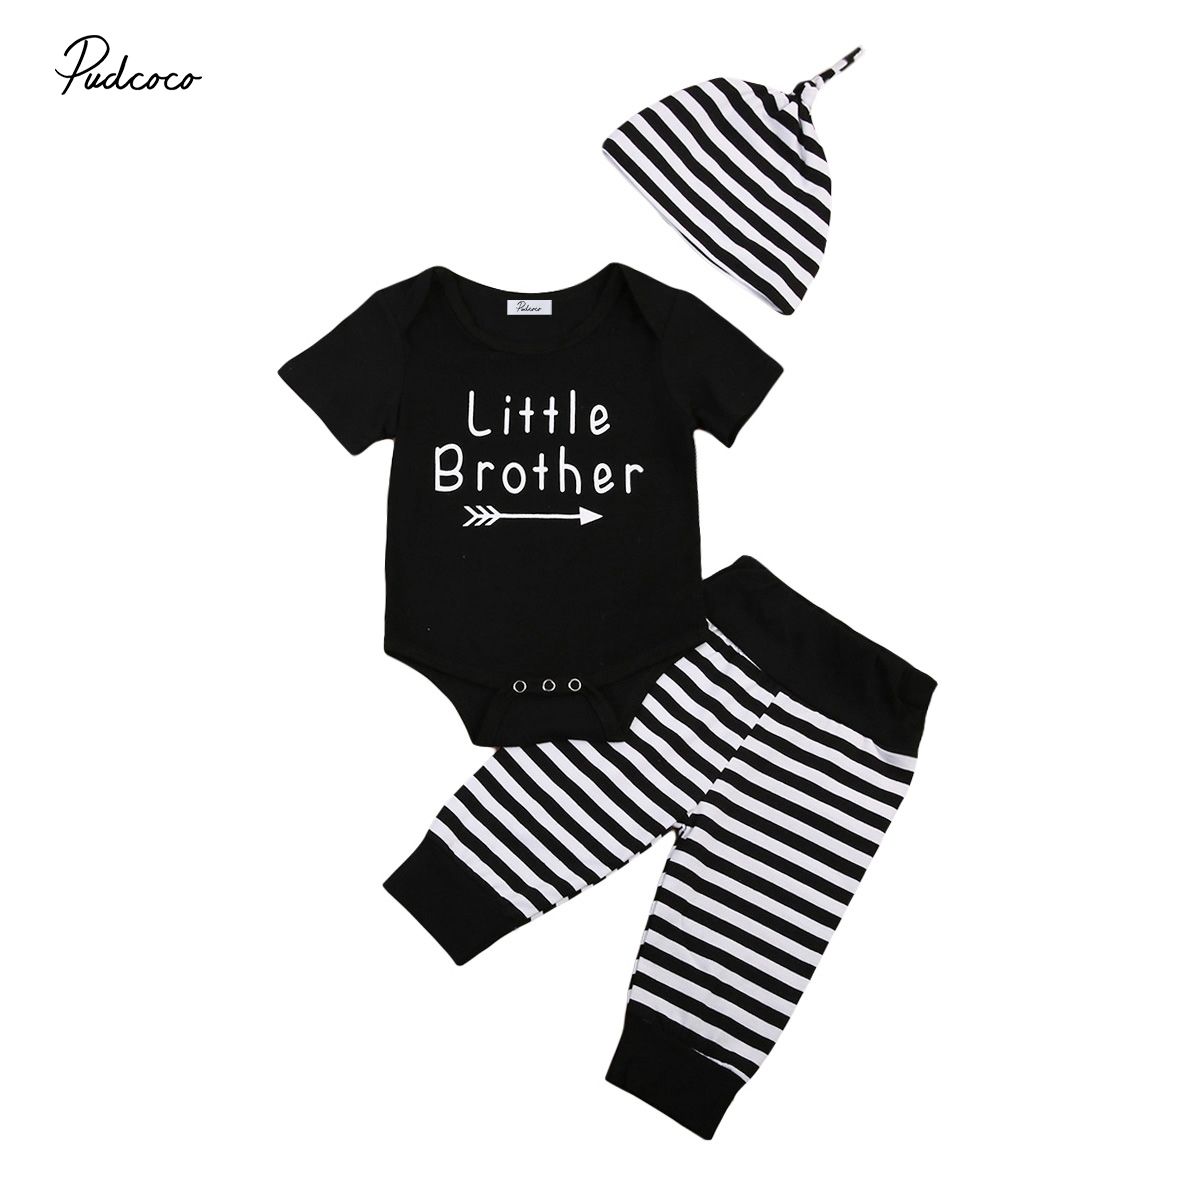 2017 Newborn Infant Baby Boy Clothes Set Outfits Clothes Little Brother Boy Romper Jumpsuit Pants 3pcs Outfits Boy Clothes Set newborn infant girl boy long sleeve romper floral deer pants baby coming home outfits set clothes